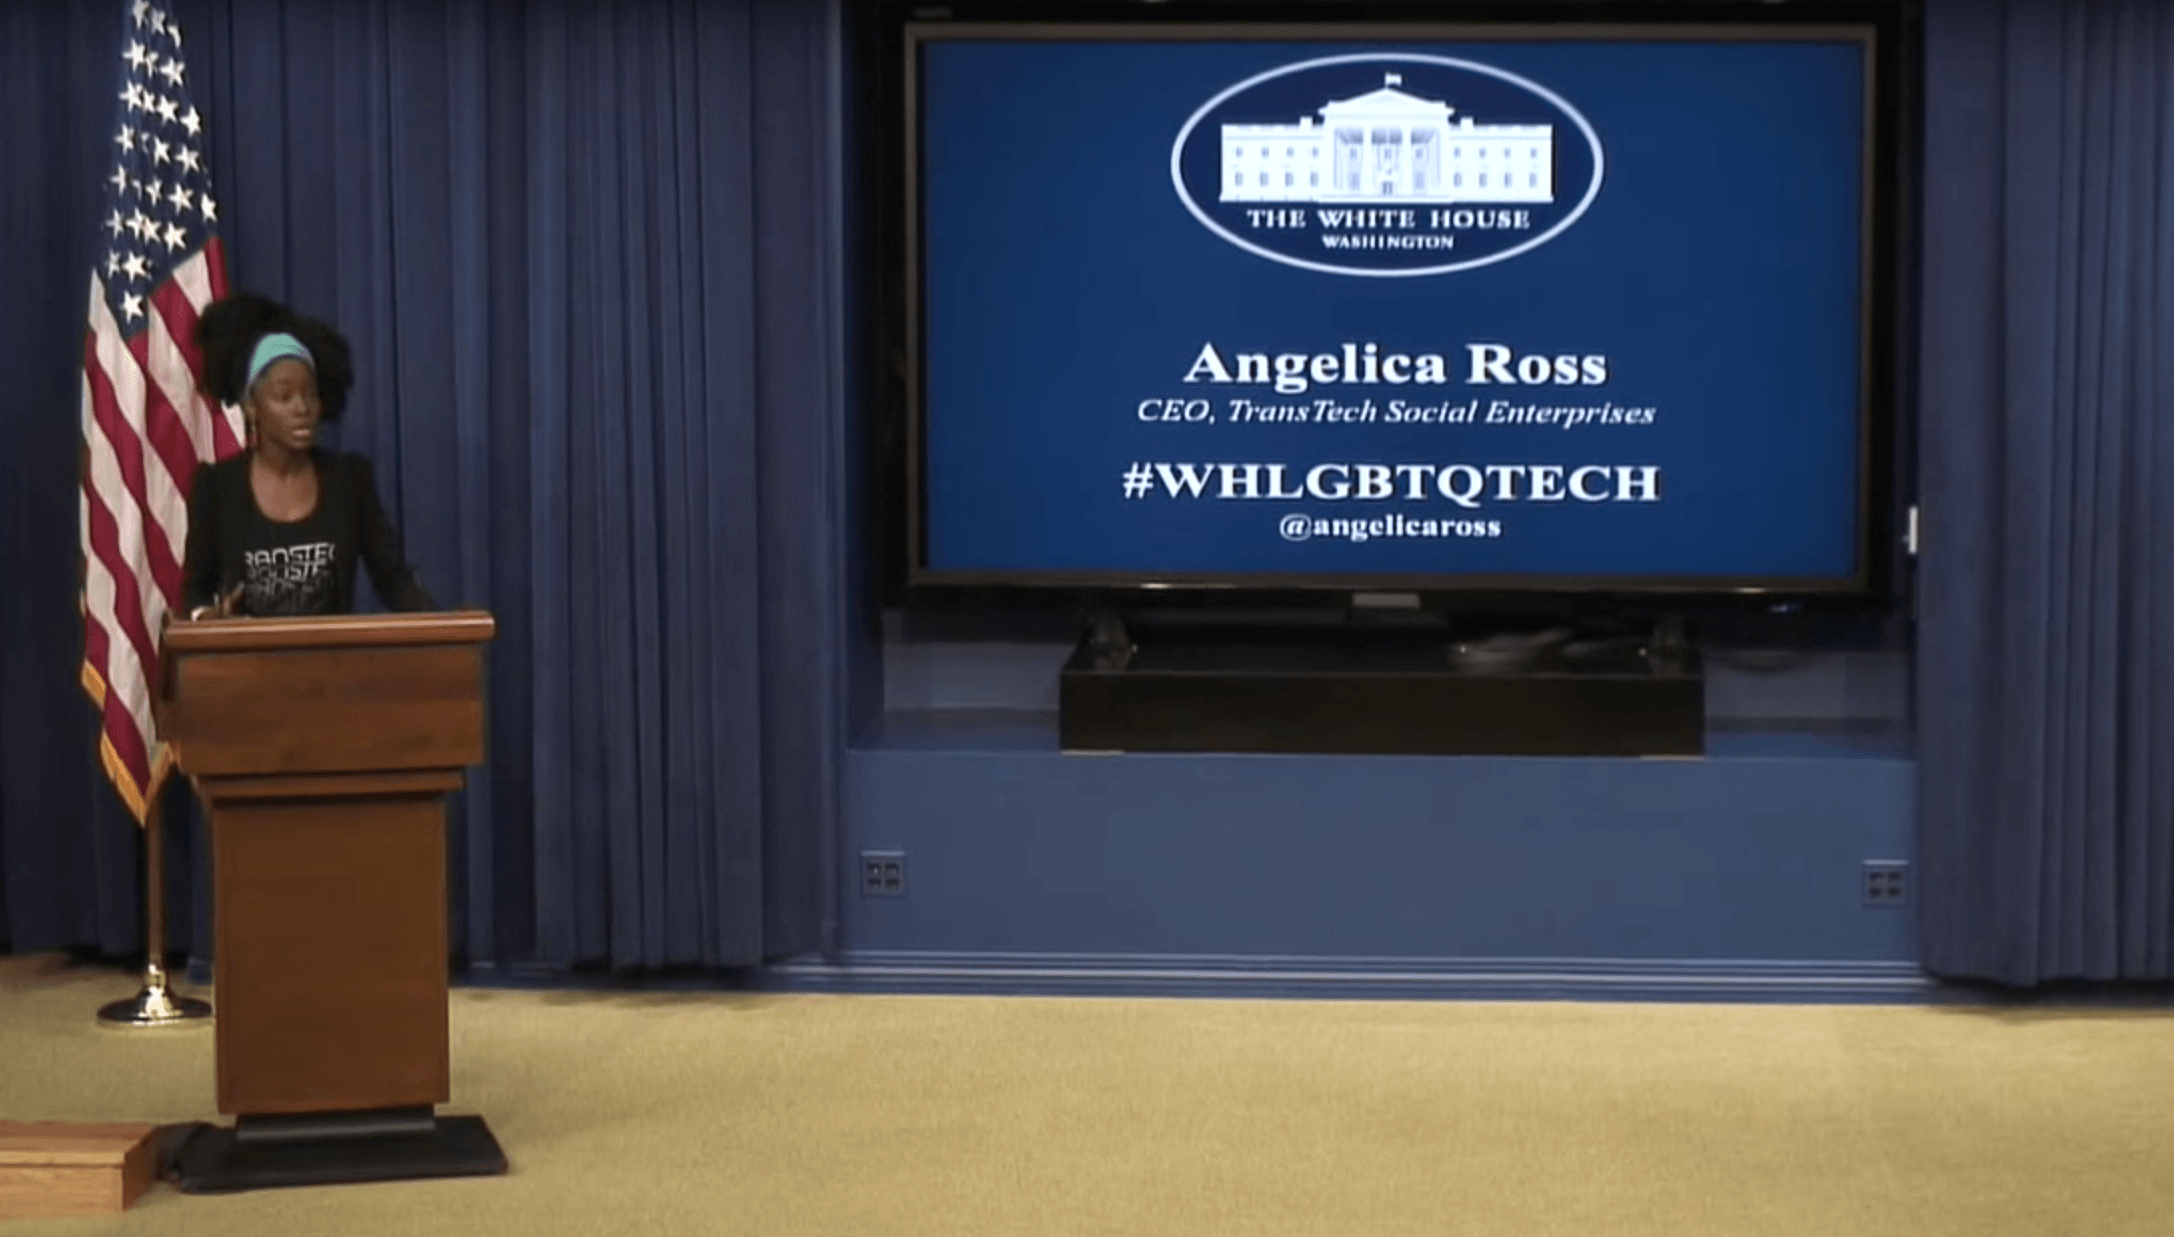 Angelica Ross at the White House